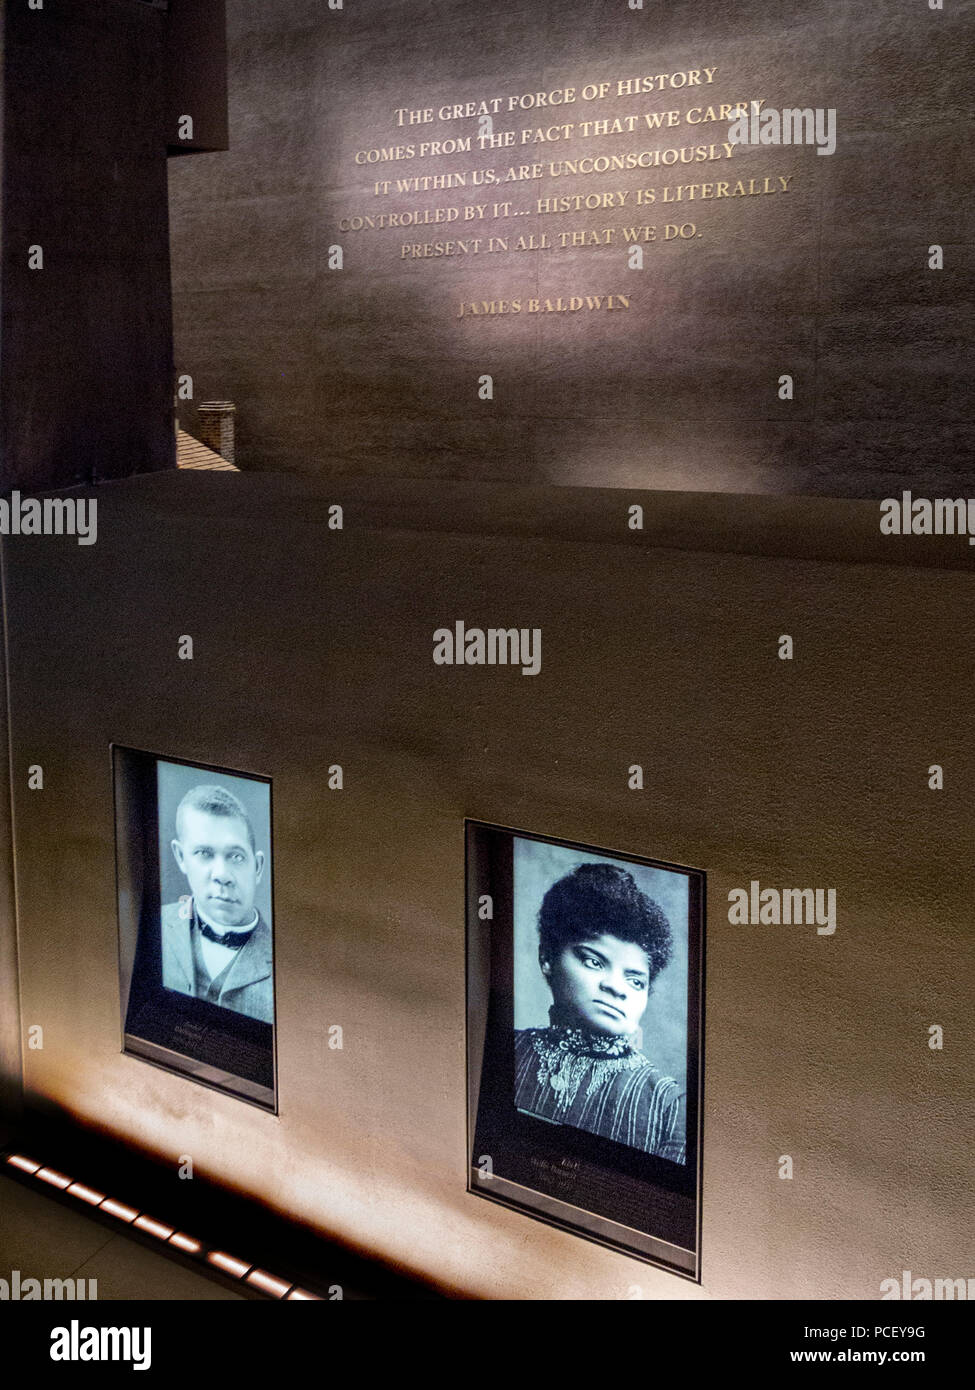 Images of civil rights personalities are displayed at the Smithsonian African American Museum in Washington, D.C. - Stock Image